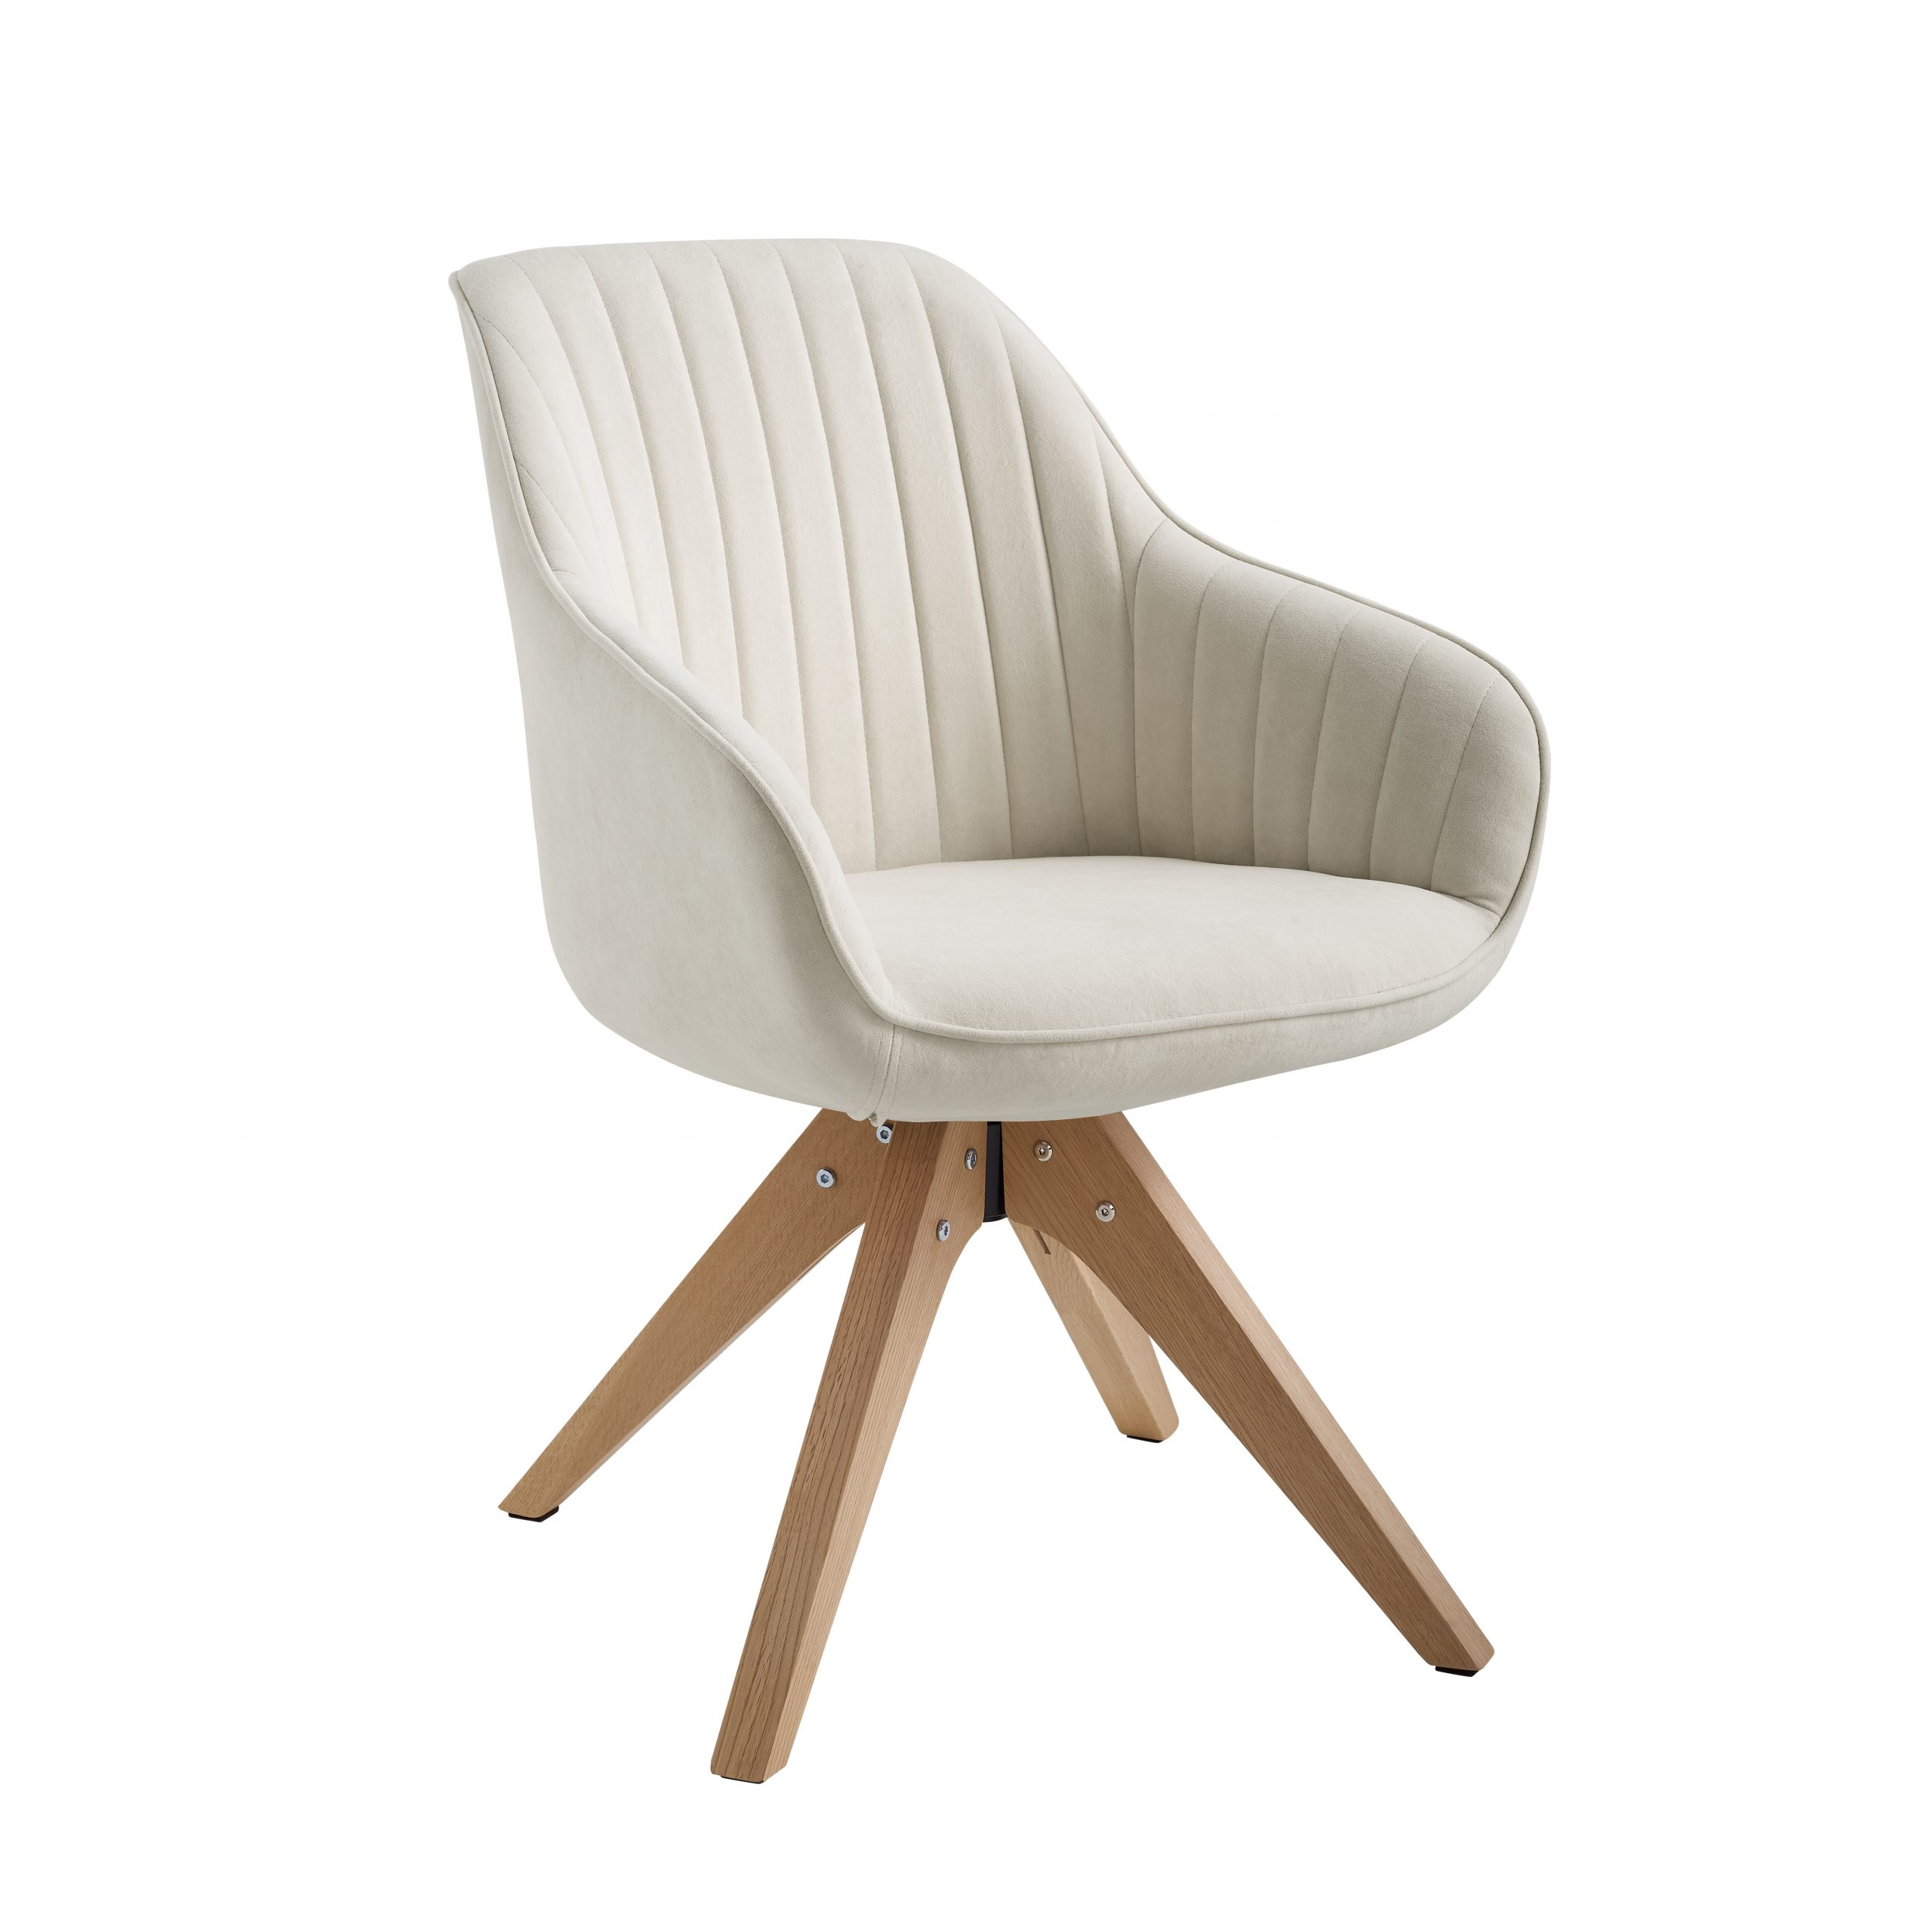 Swivel White Accent Chairs You'Ll Love In 2021 | Wayfair With Regard To Brister Swivel Side Chairs (View 5 of 15)